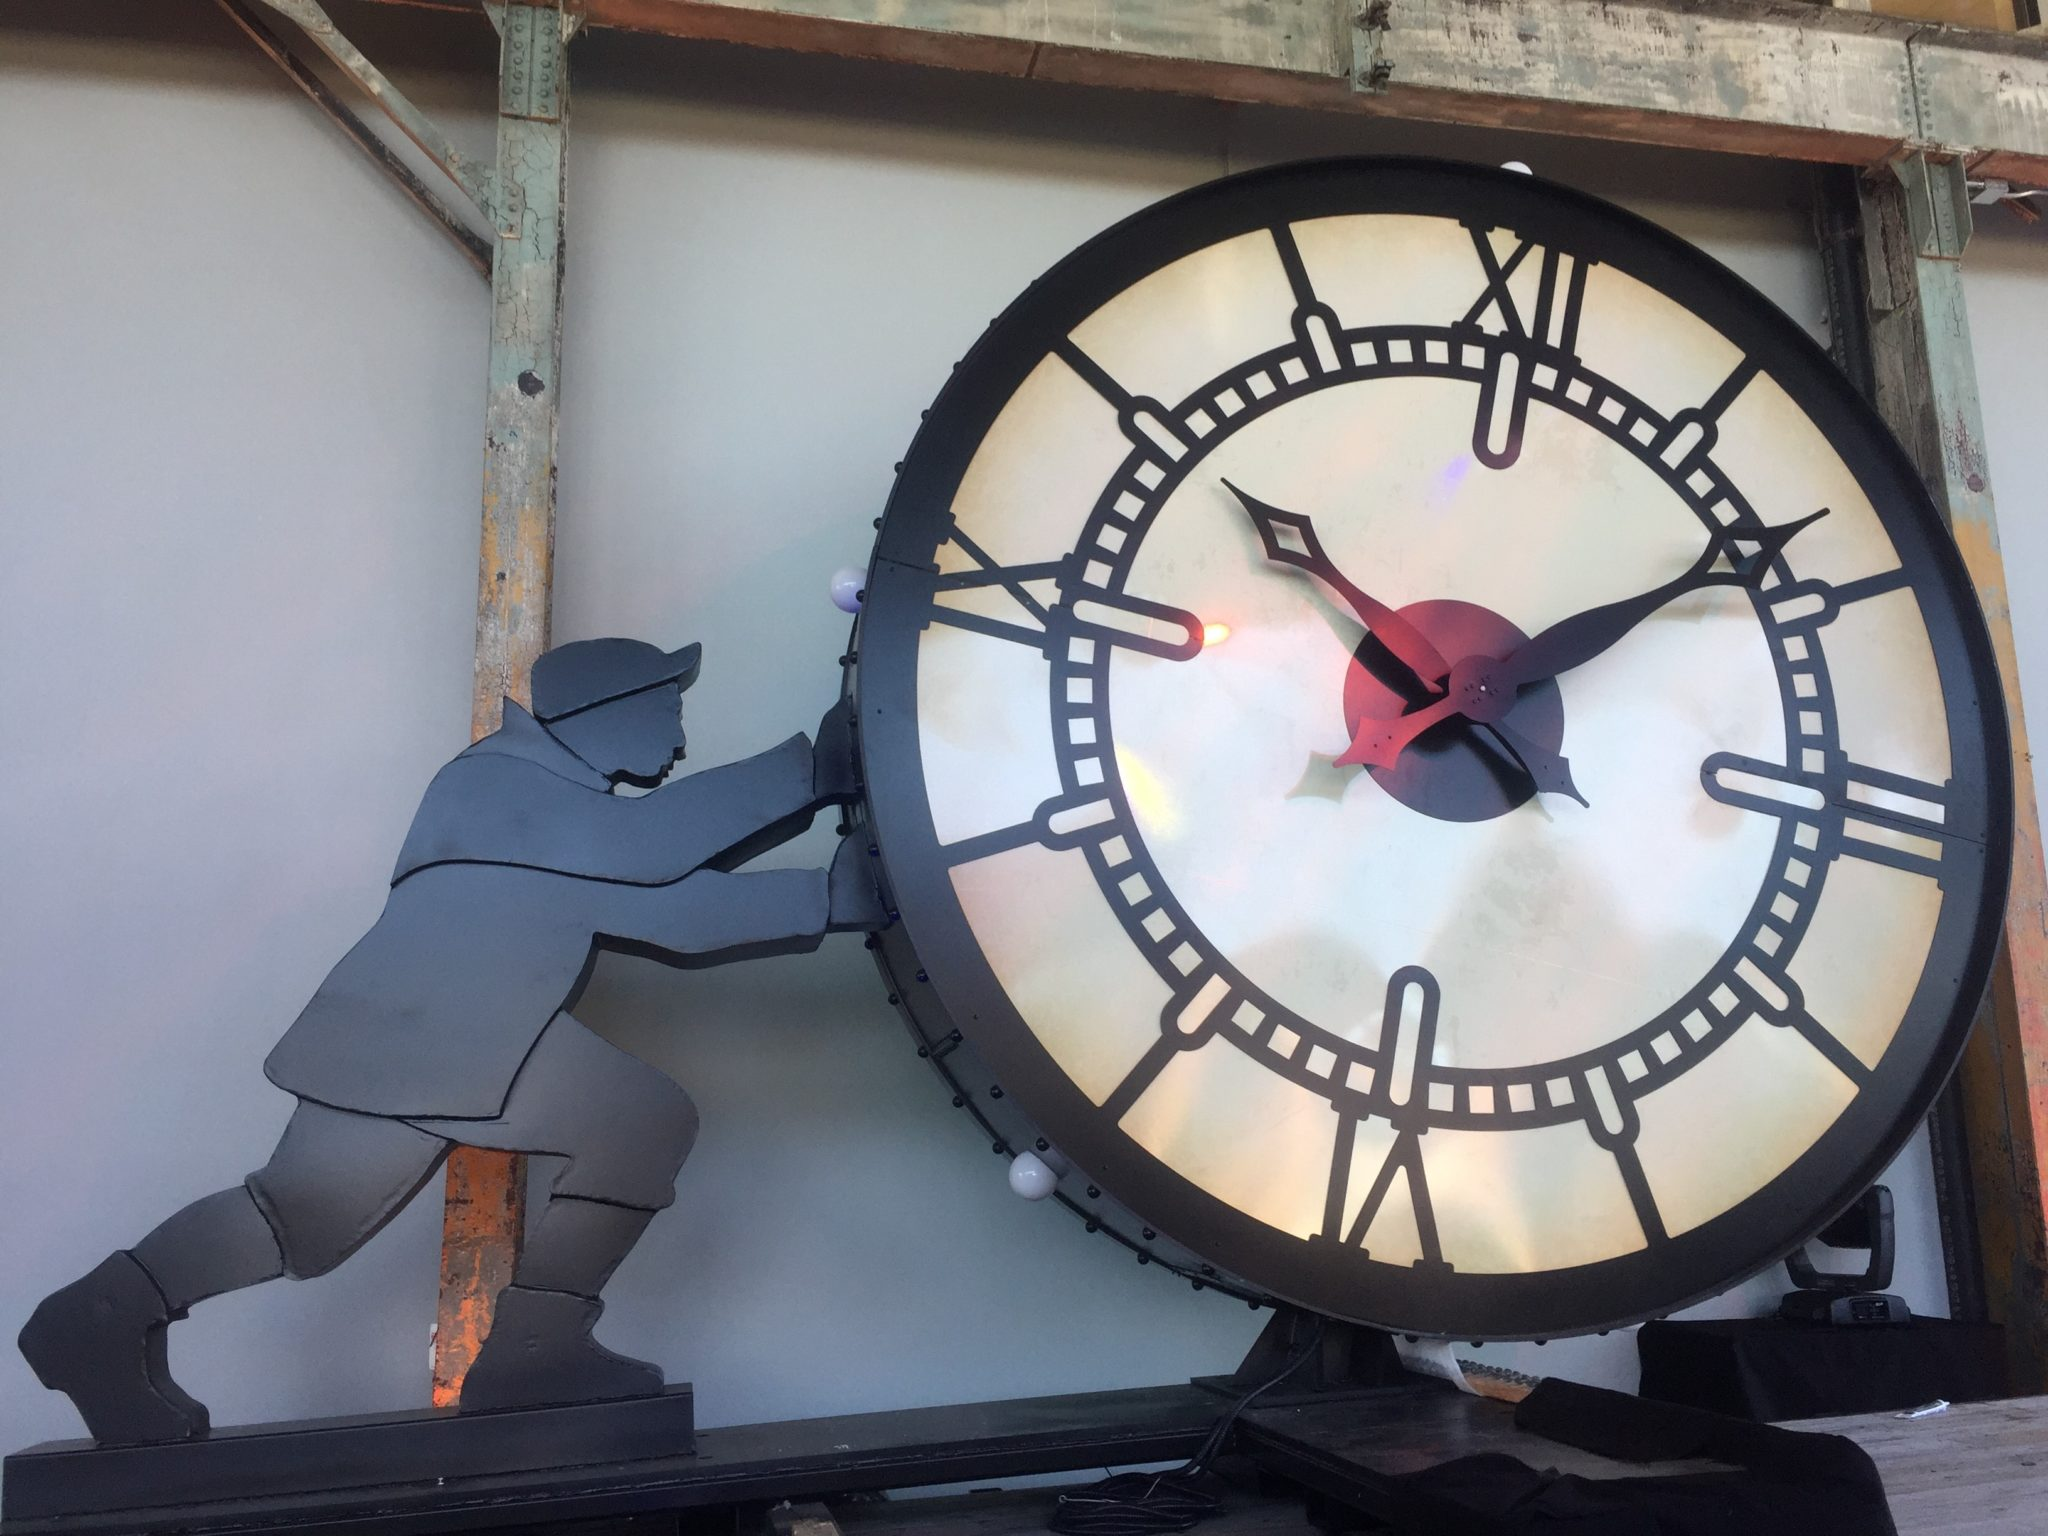 THE FOUNDRY CLOCK MAN was unveiled at the FireBall at the WaterFire Arts Center Thursday evening. The sculpture will overlook I-95 from The Foundry Campus. / COURTESY THE FOUNDRY